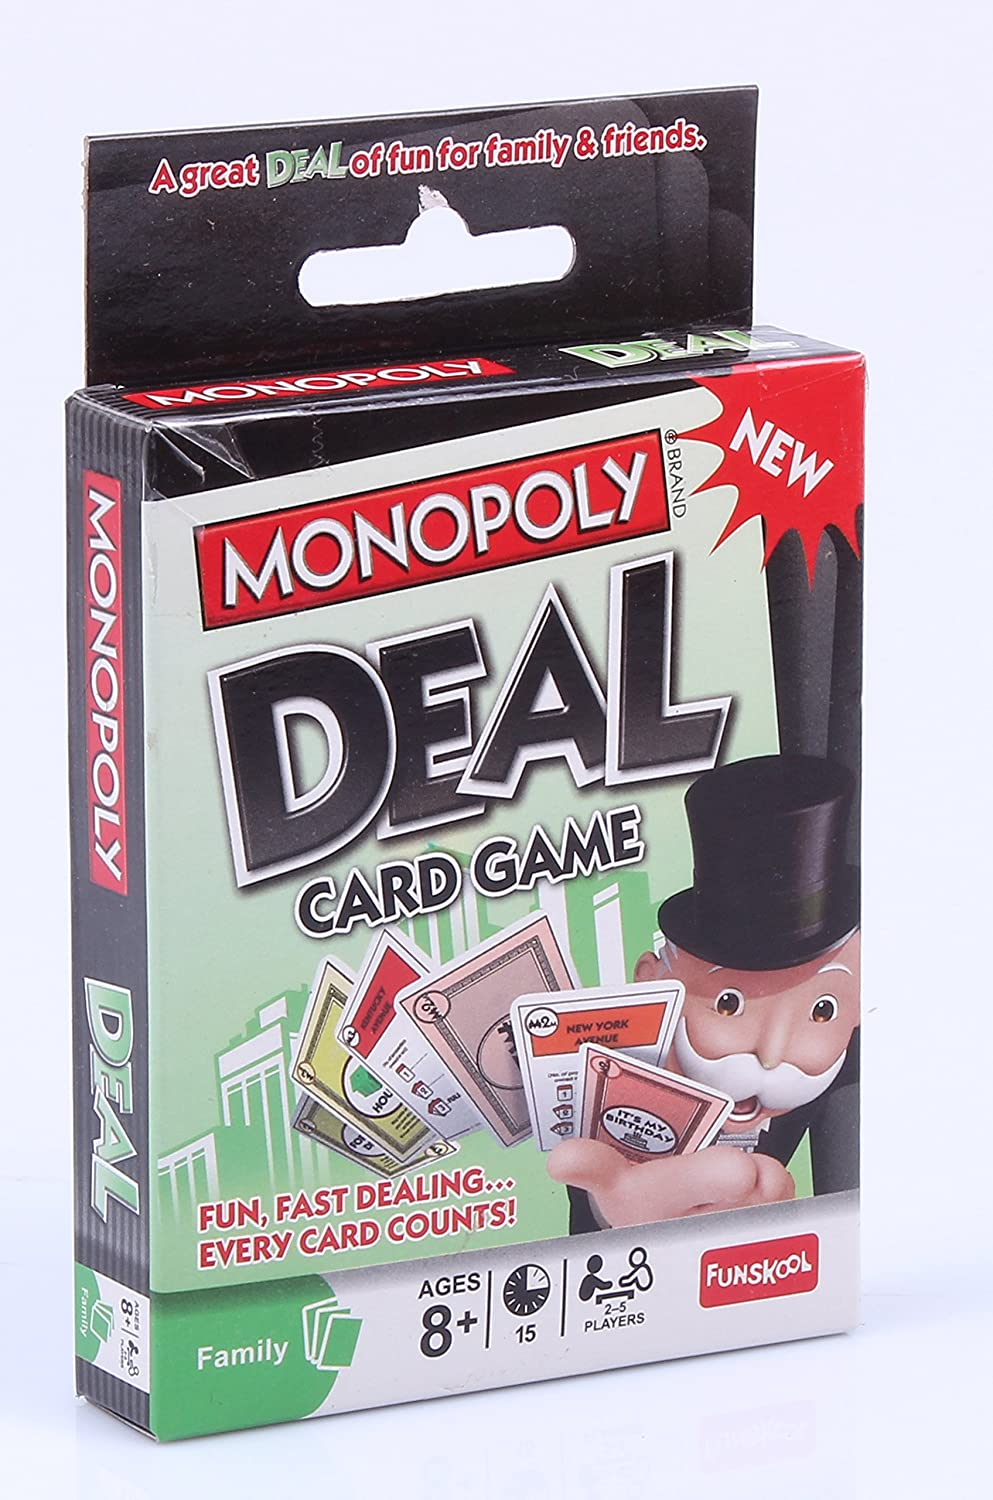 Buy funskool monopoly deal card game online at low prices in india buy funskool monopoly deal card game online at low prices in india amazon reheart Image collections